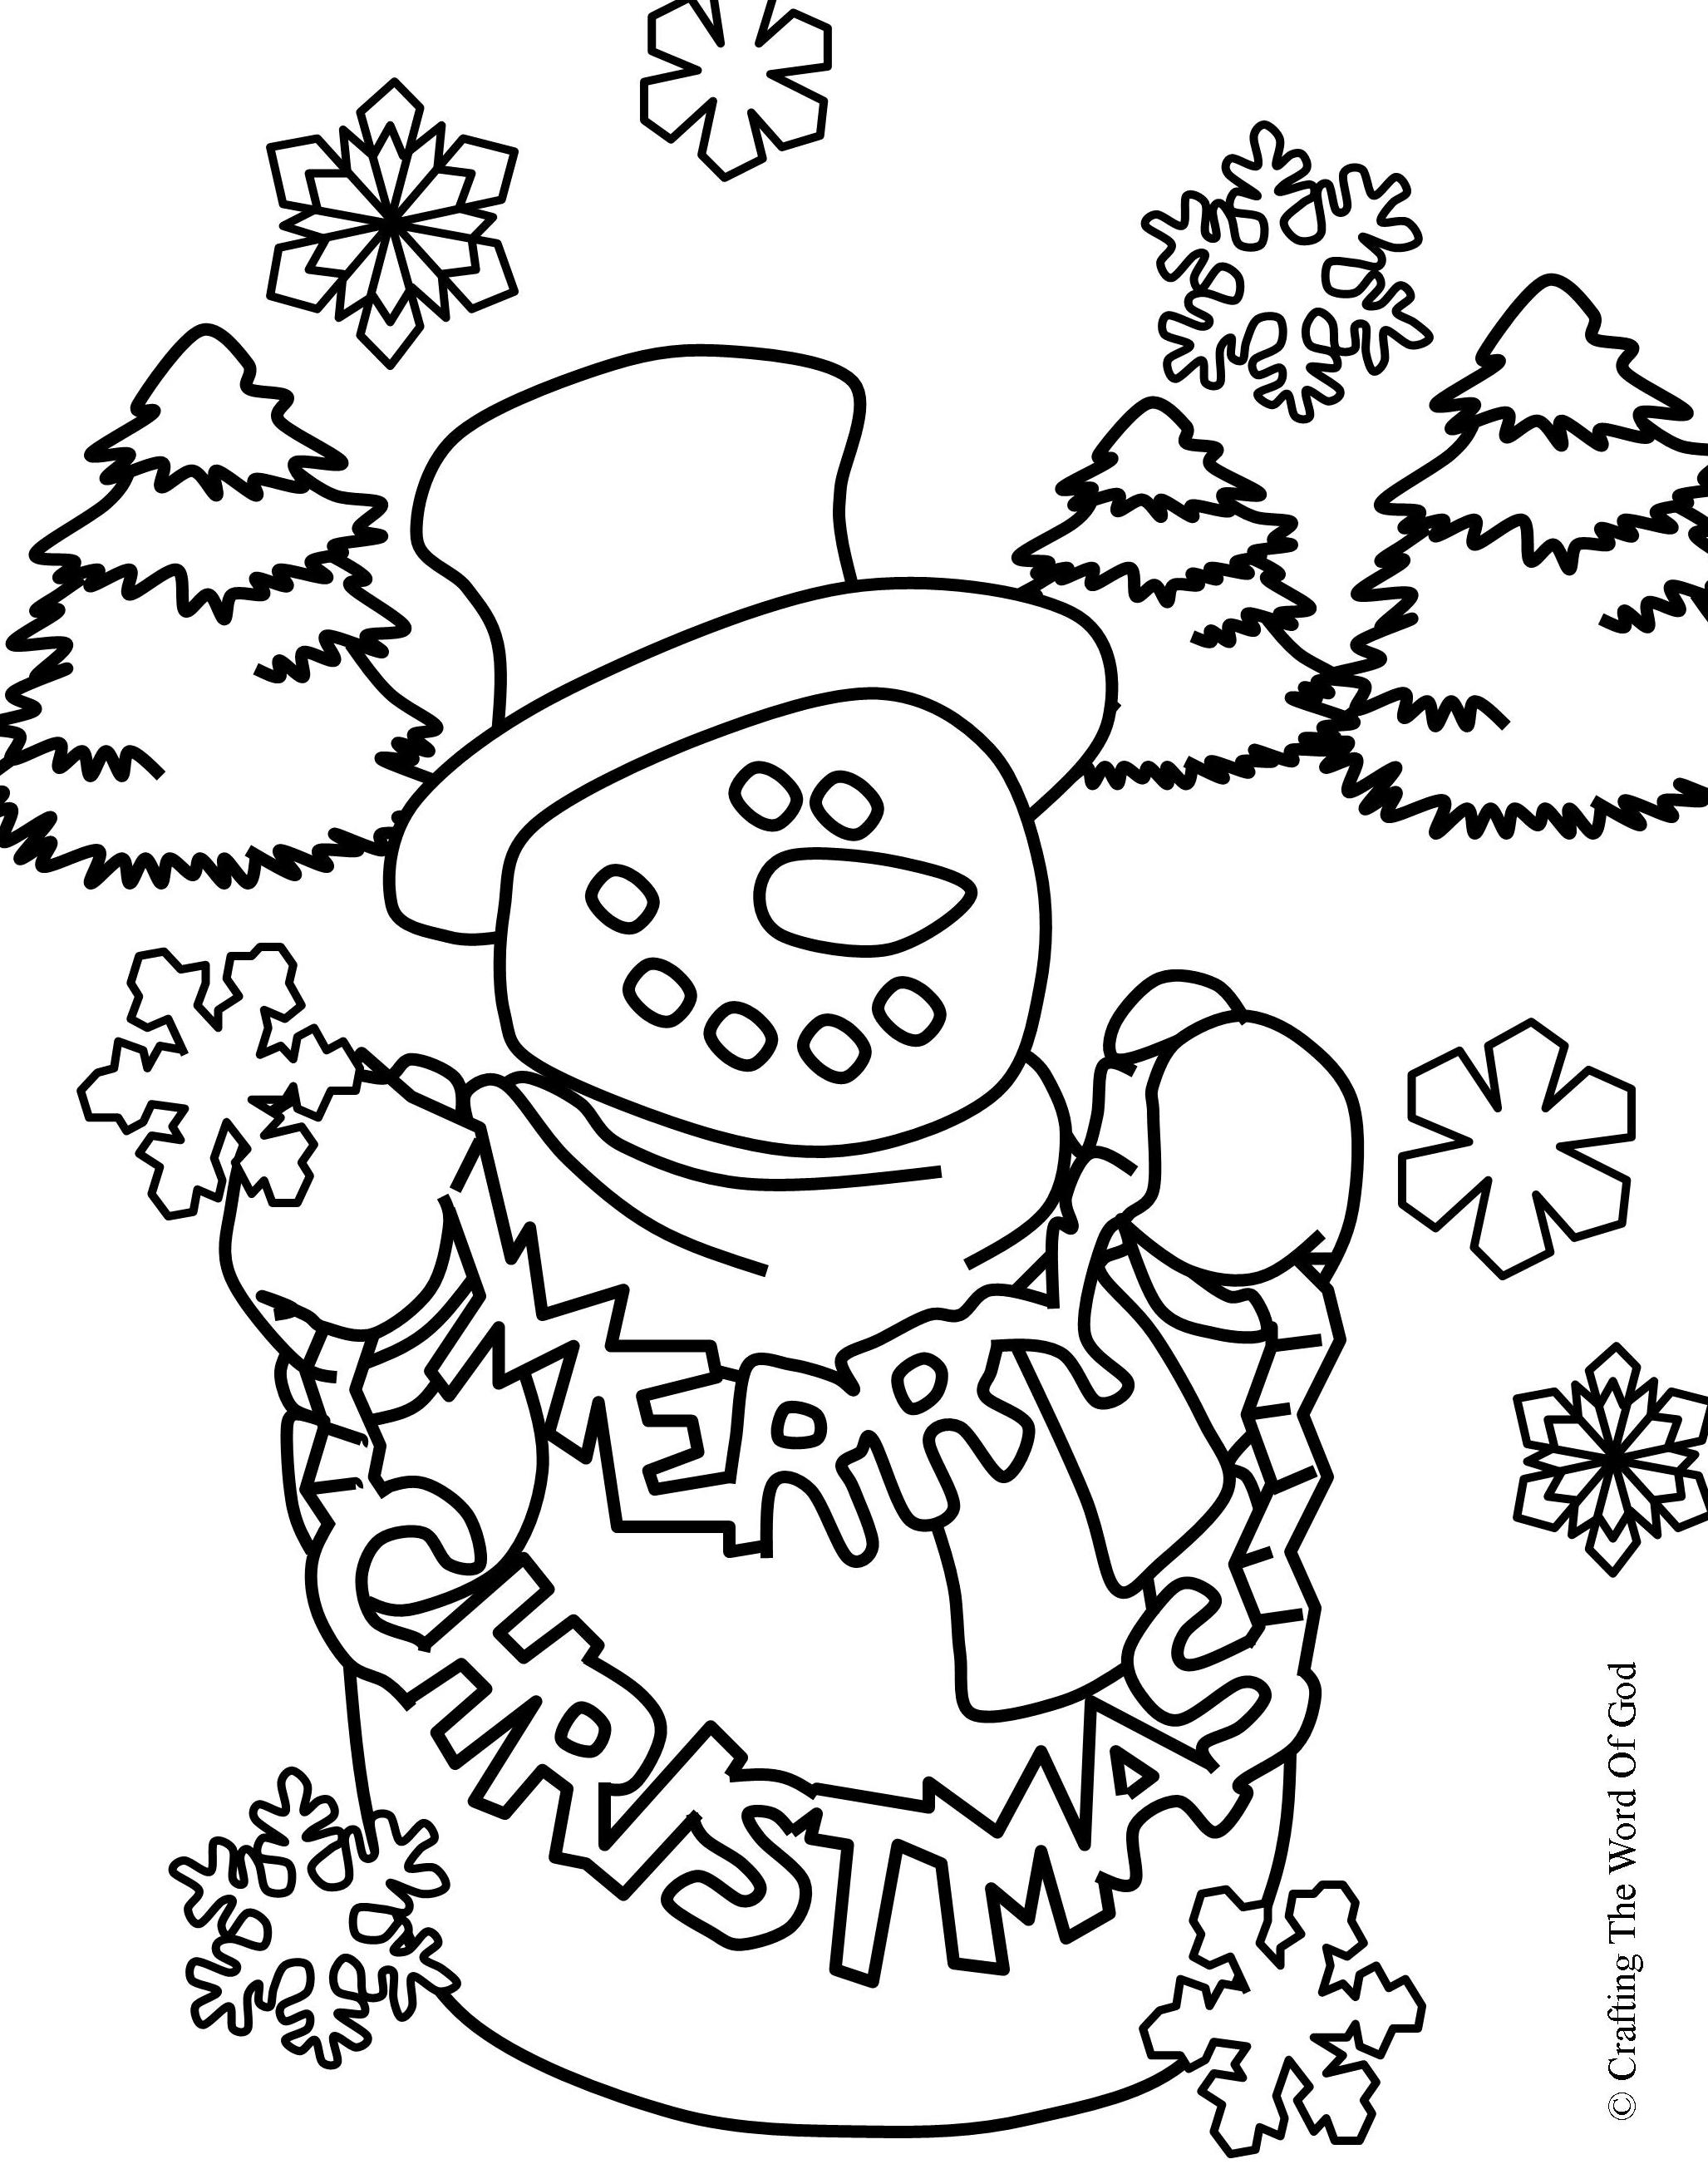 Christmas Coloring Page 2- Coloring Page « Crafting The